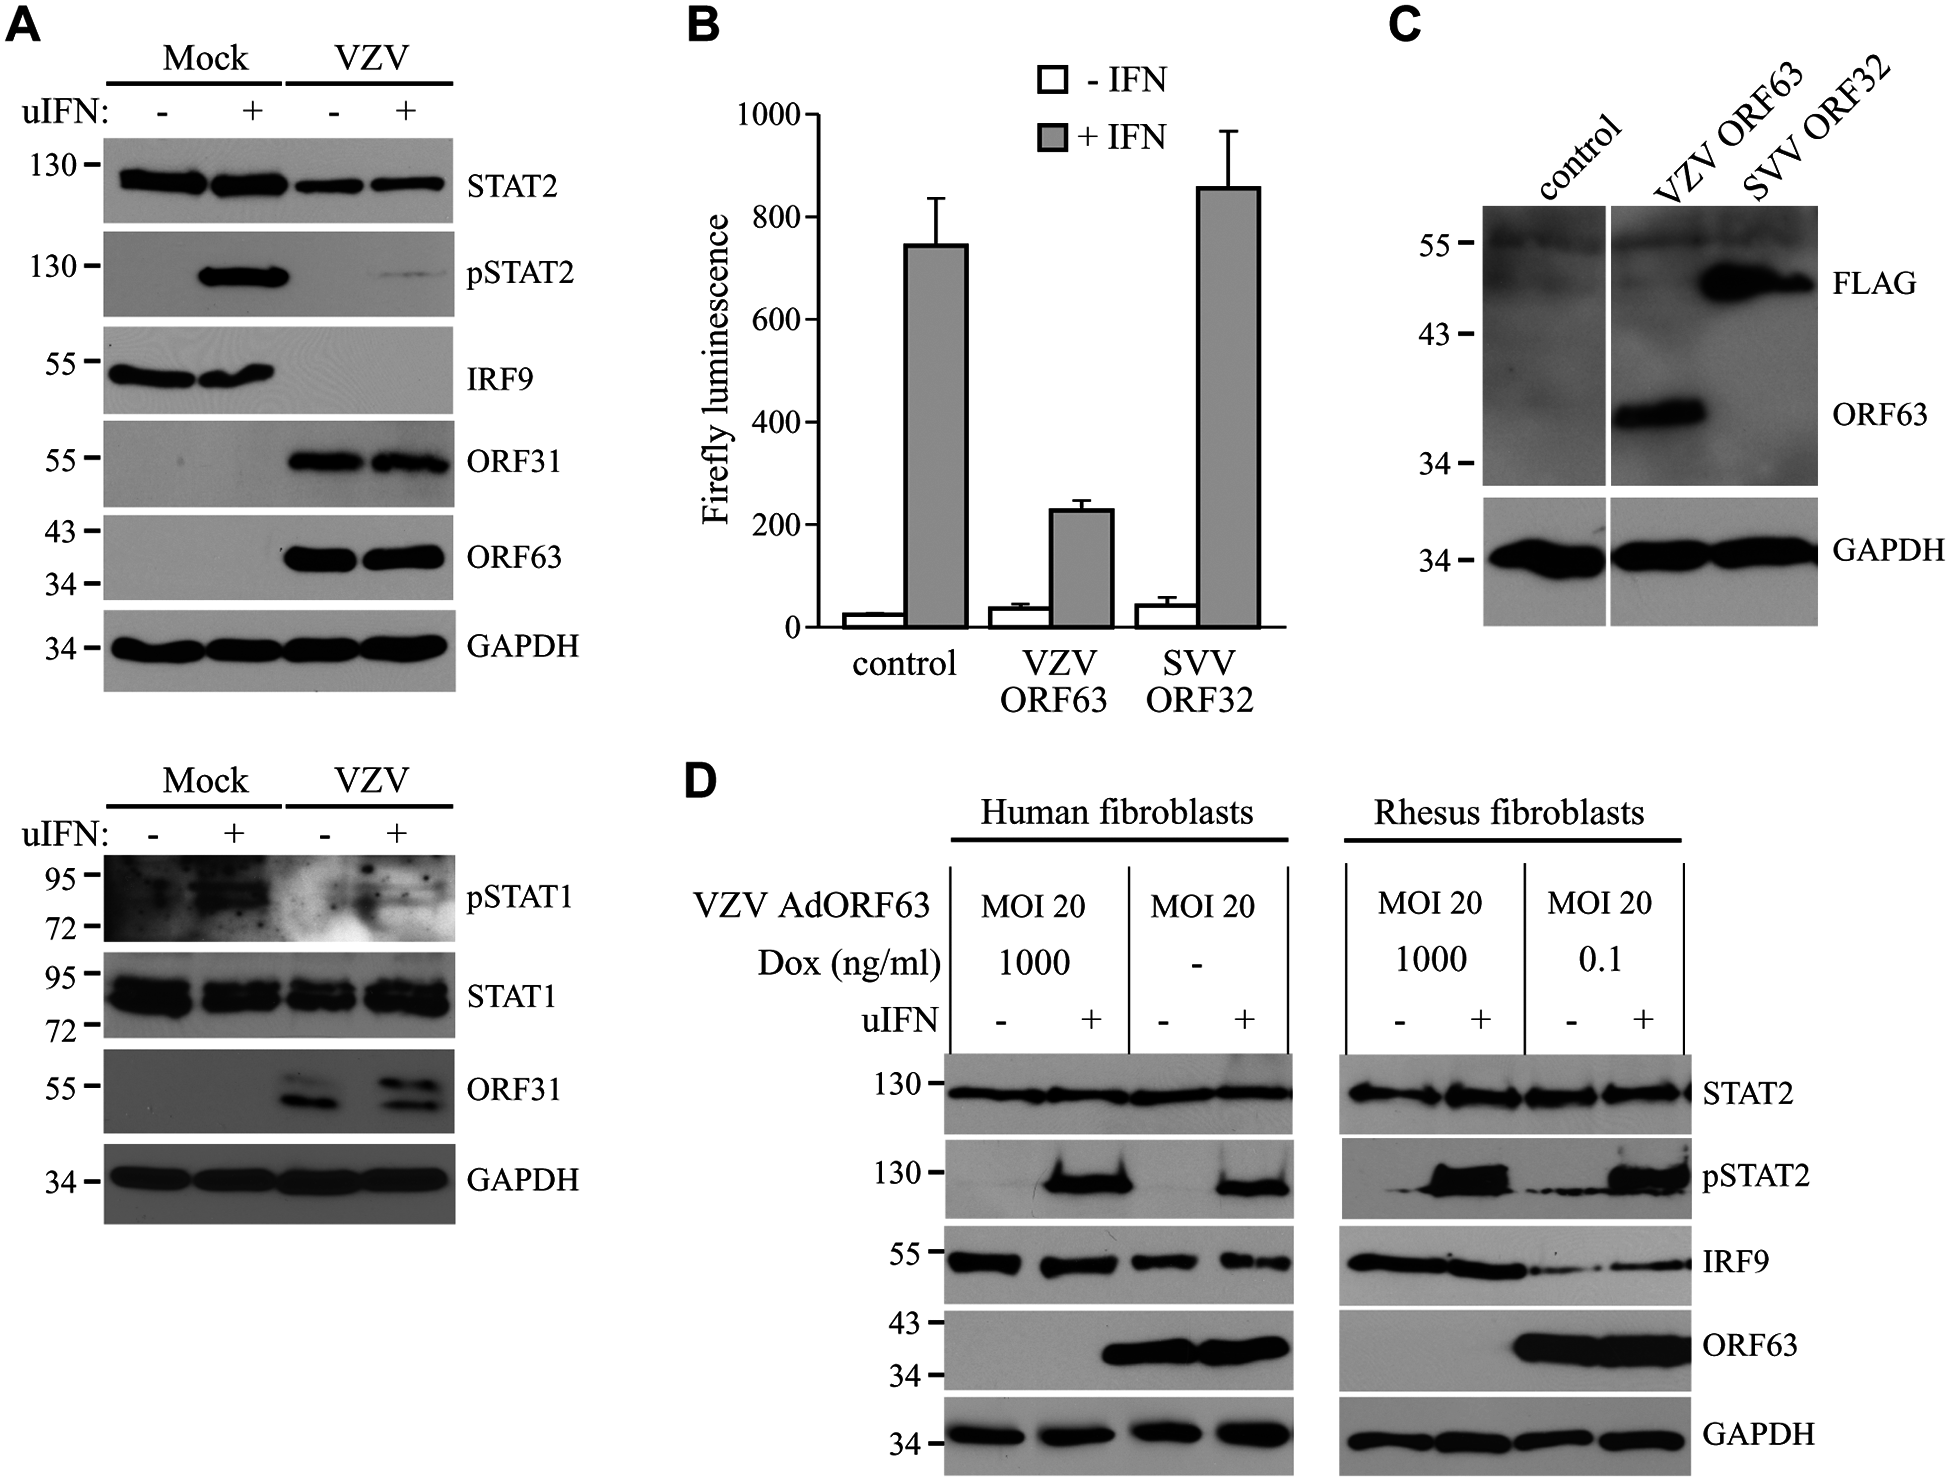 Inhibition of IFN-induced JAK-STAT signaling by VZV.